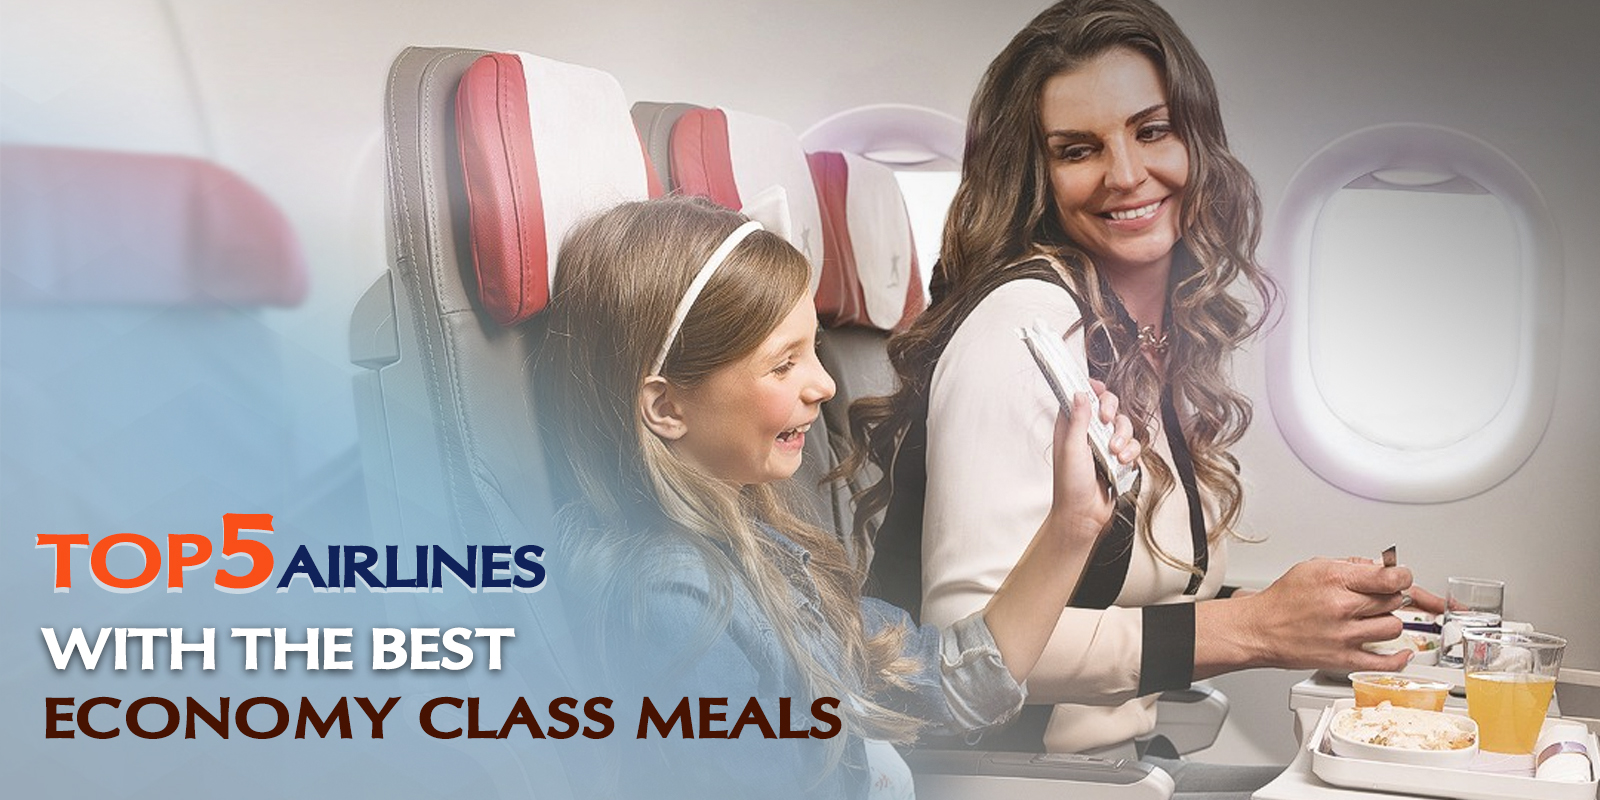 Top 5 Airlines With The Best Economy Class Meals